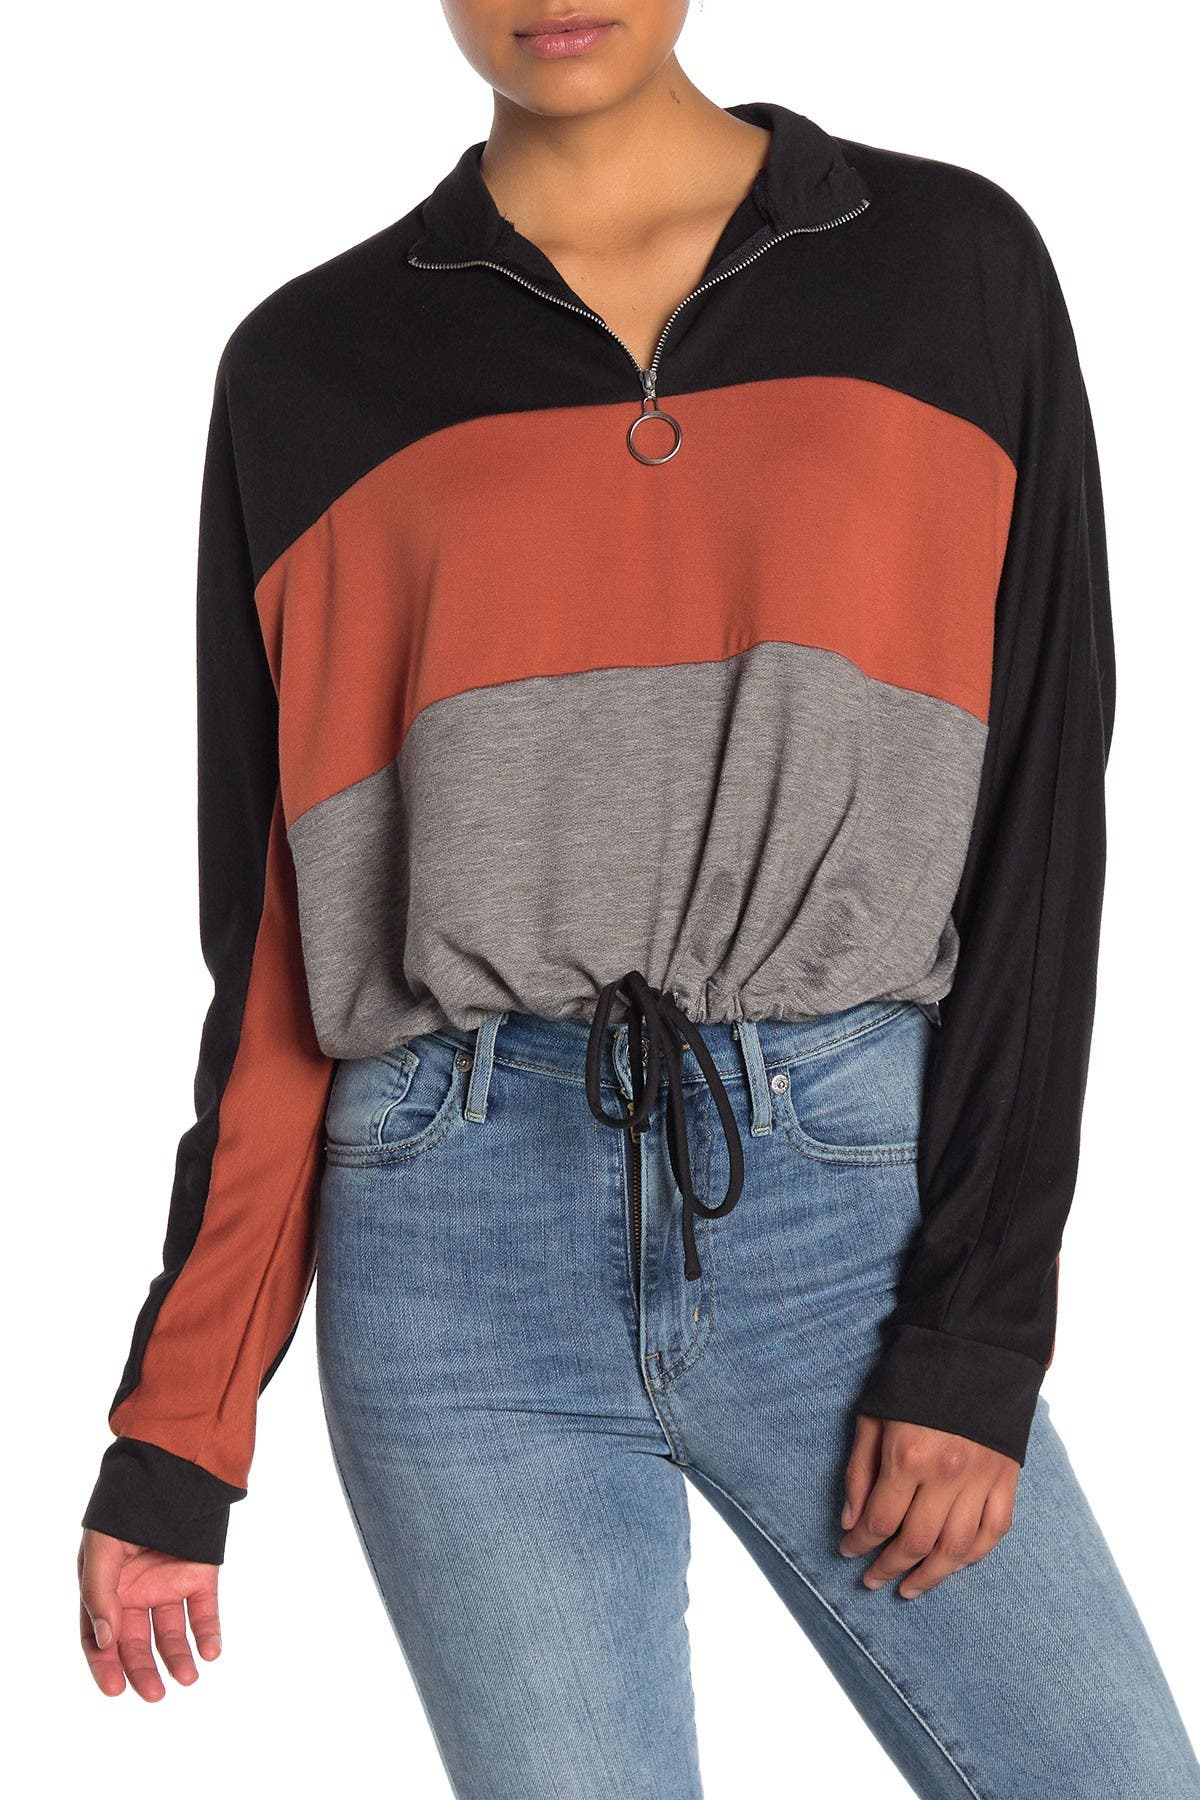 Image of Abound Colorblock Half Zip Pullover Sweater